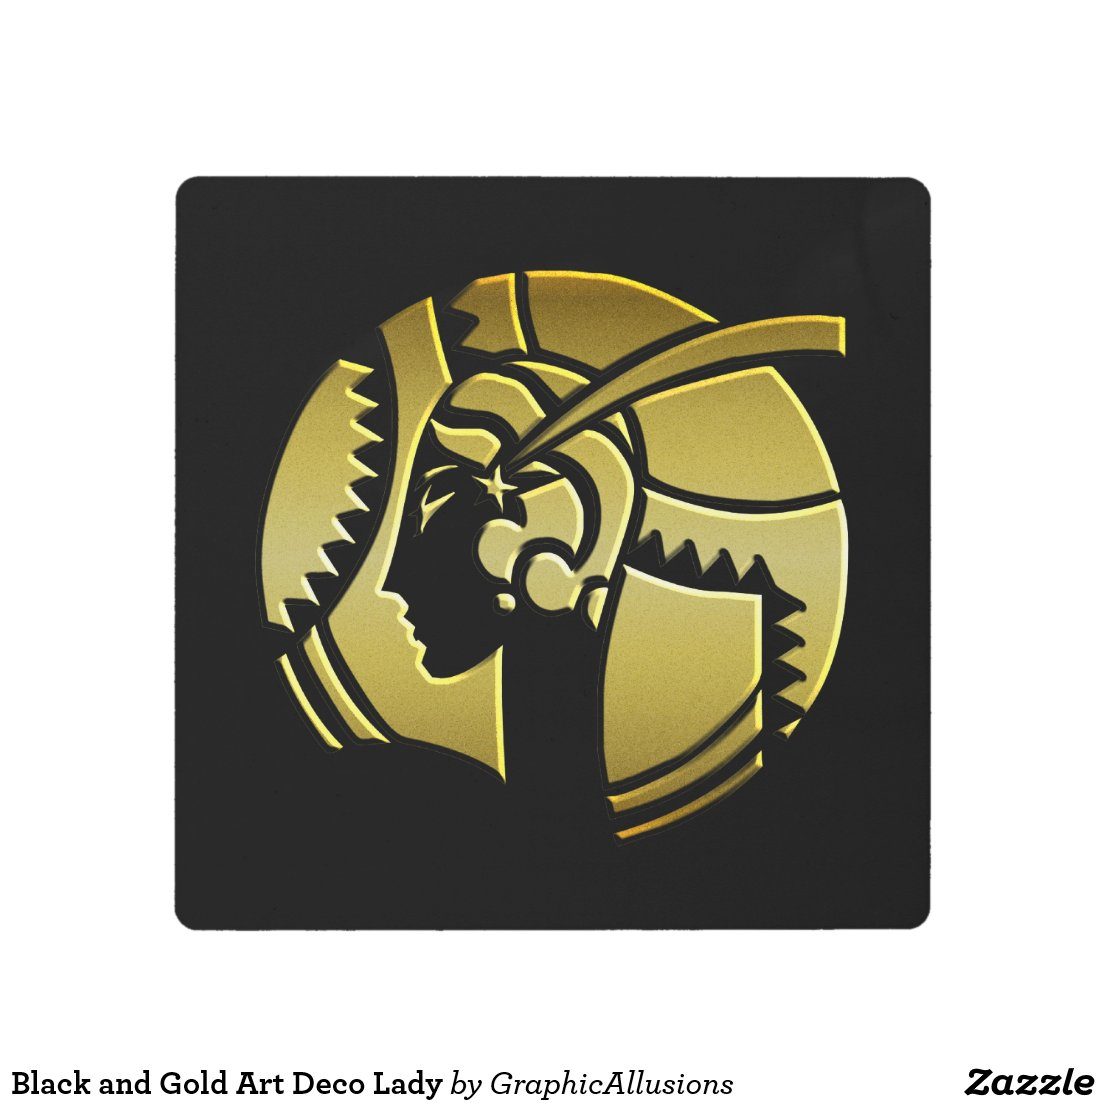 Black and Gold Art Deco Lady